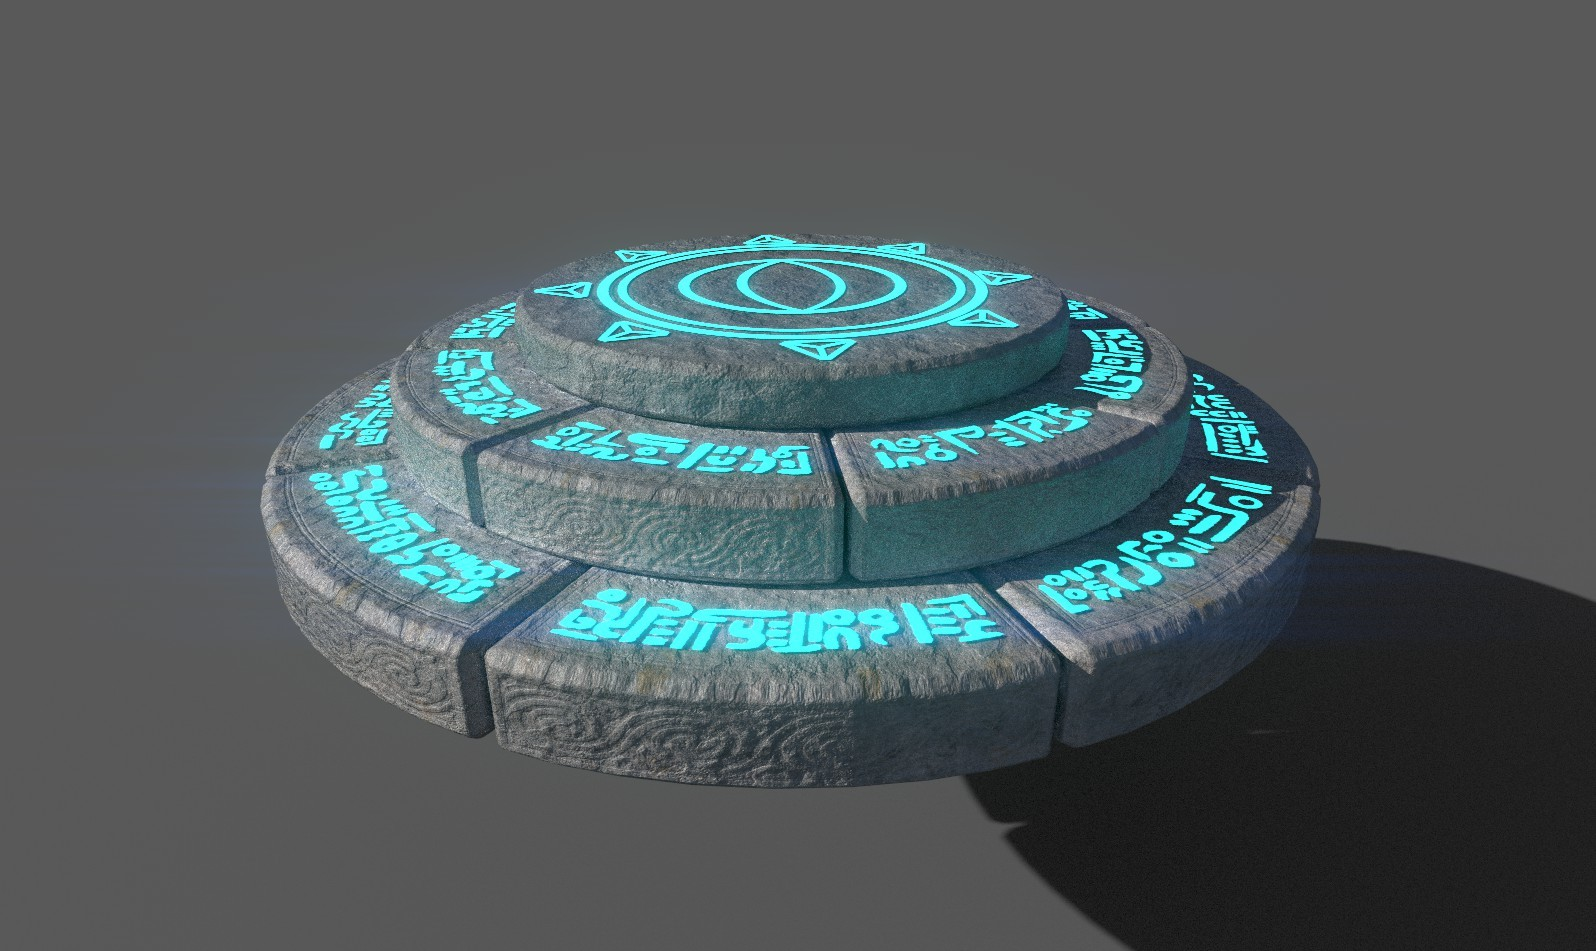 3D model of the respawn point, created in maya, textured in Substance painter.